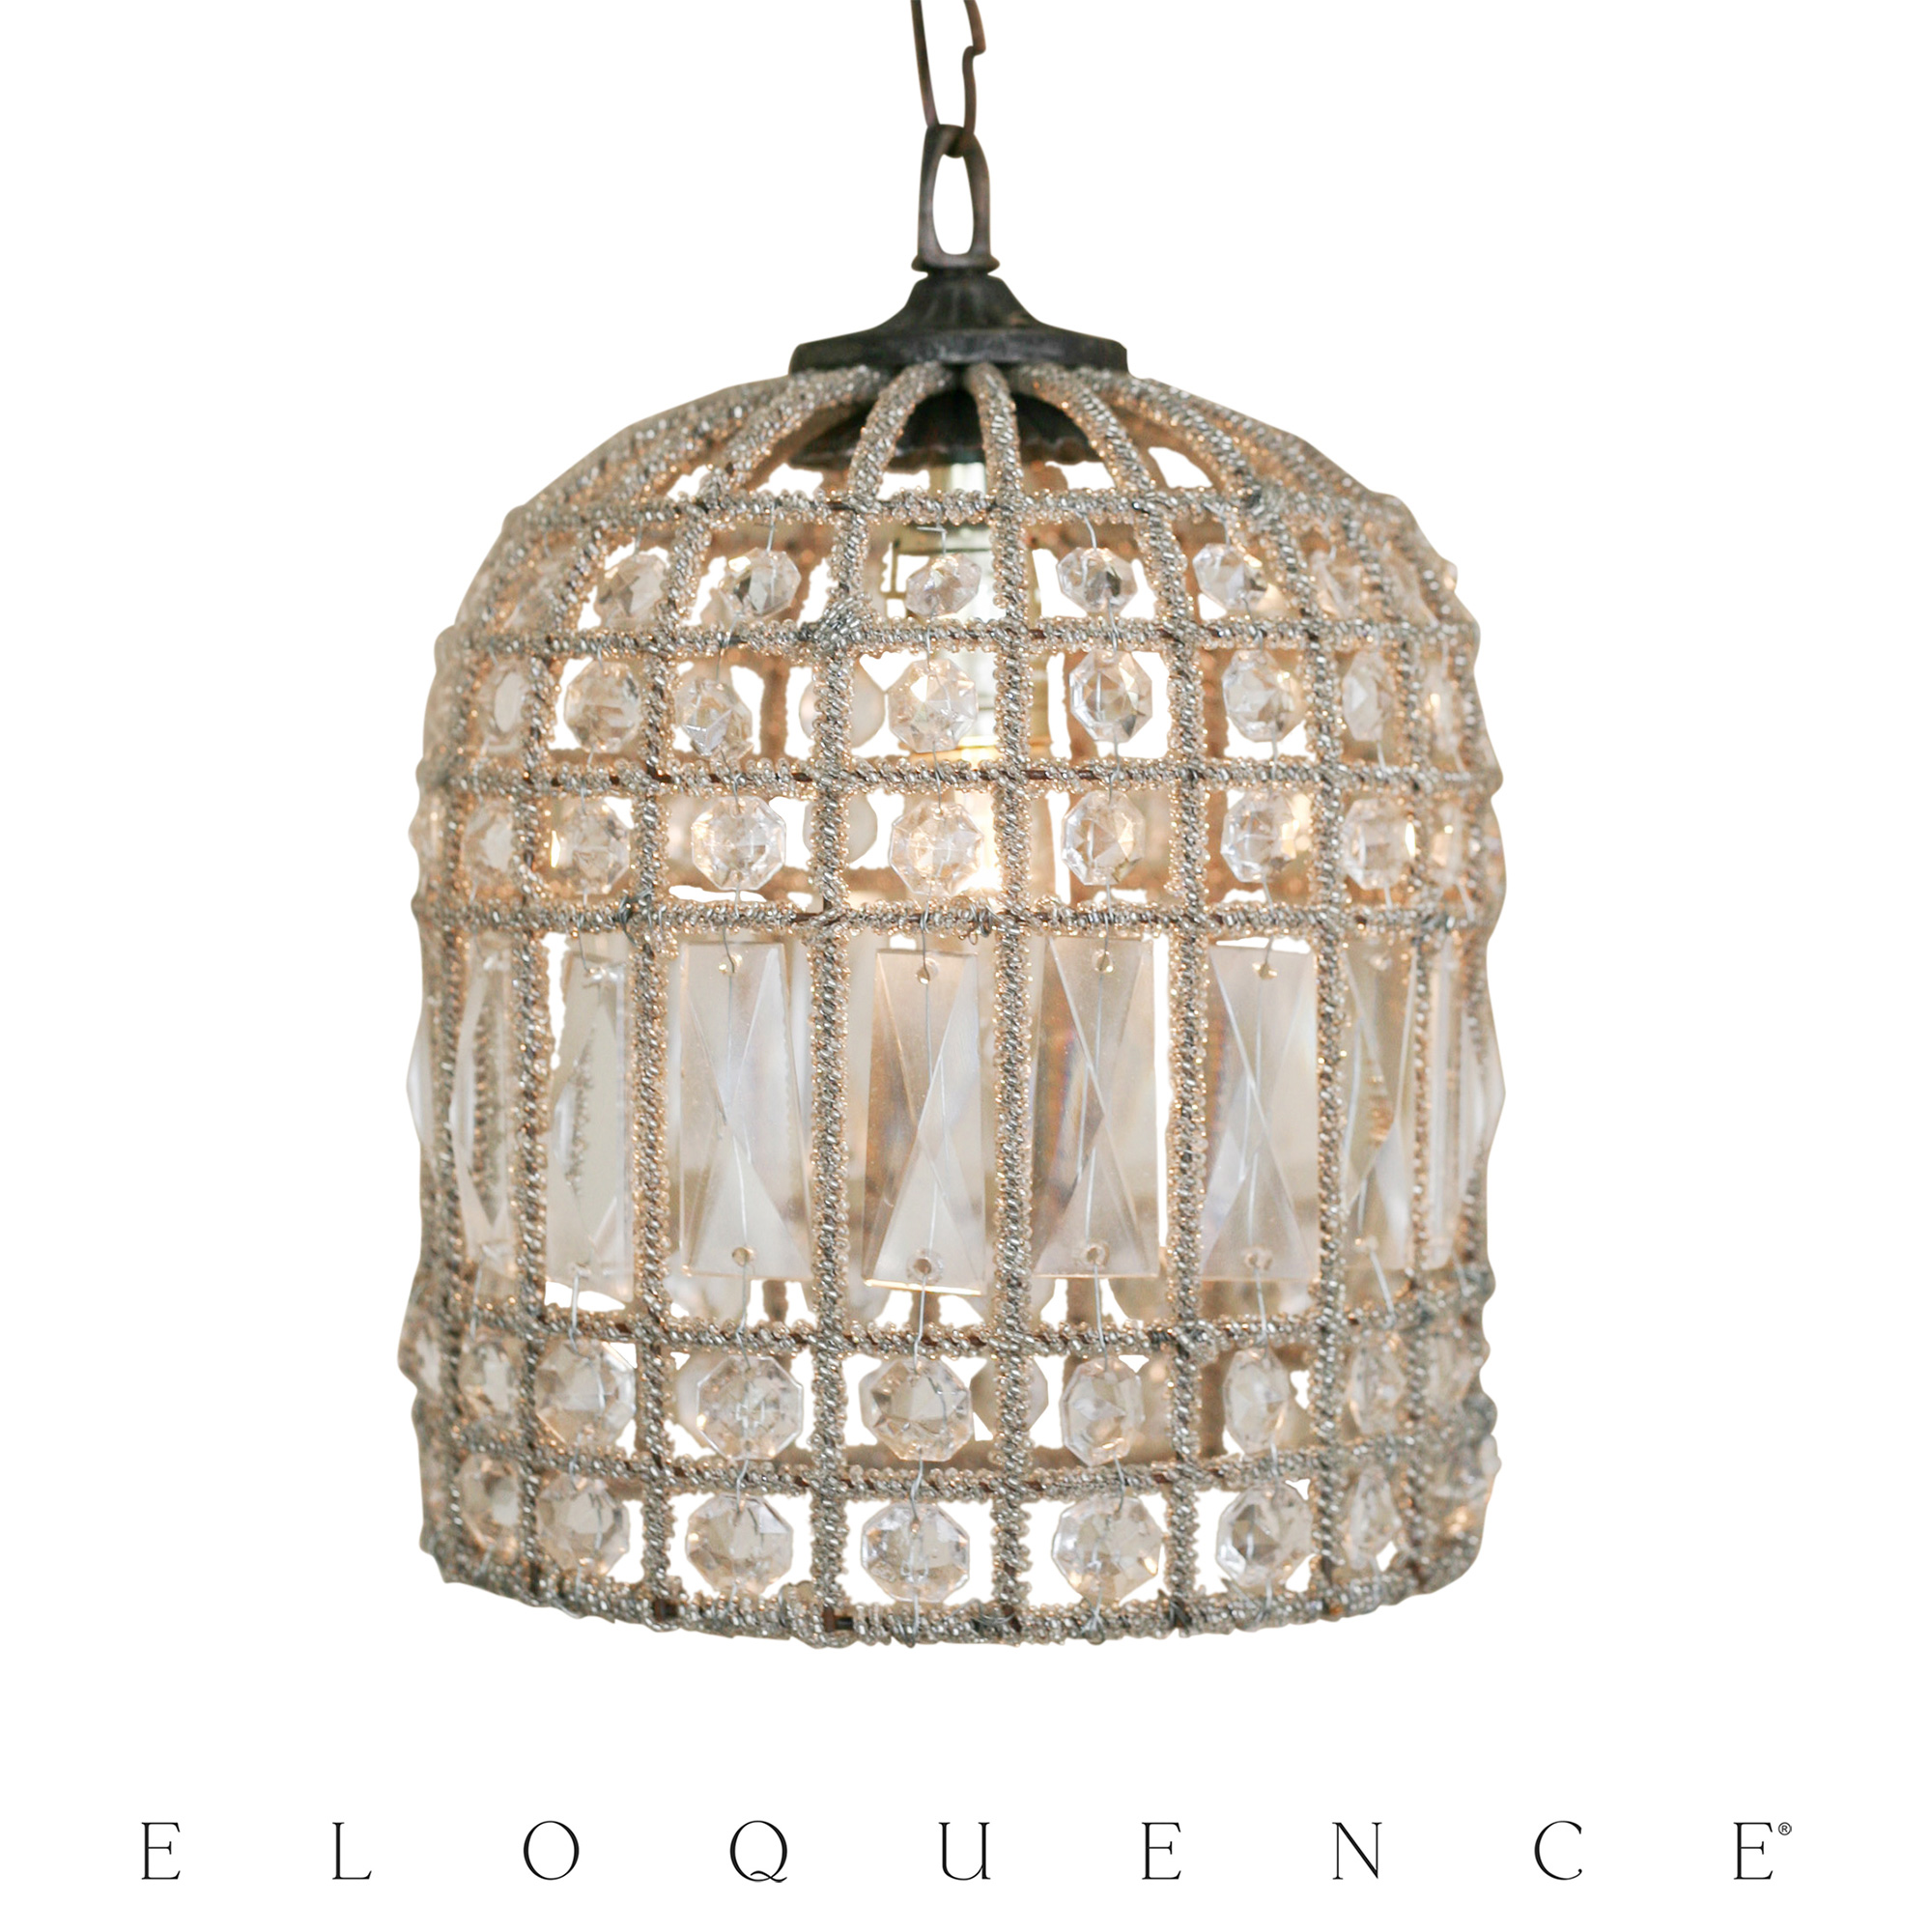 Eloquence Small Birdcage Chandelier